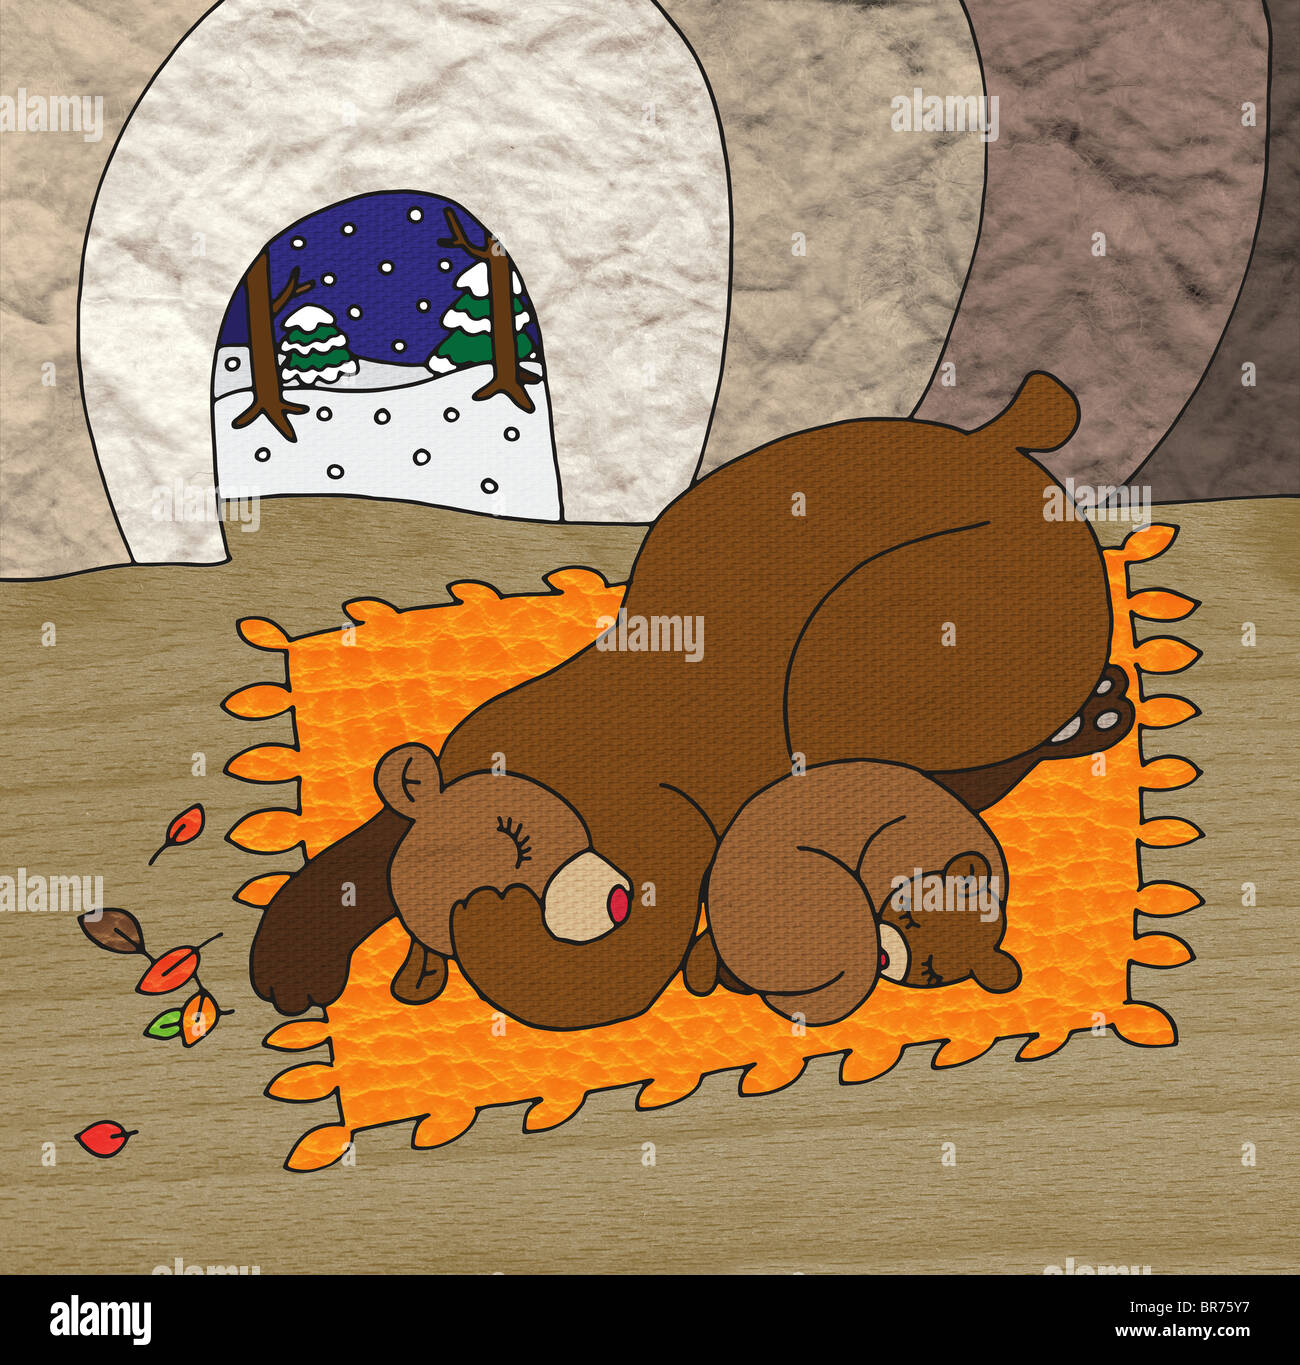 A mother bear and cub sleeping in a cave and snow outside - Stock Image